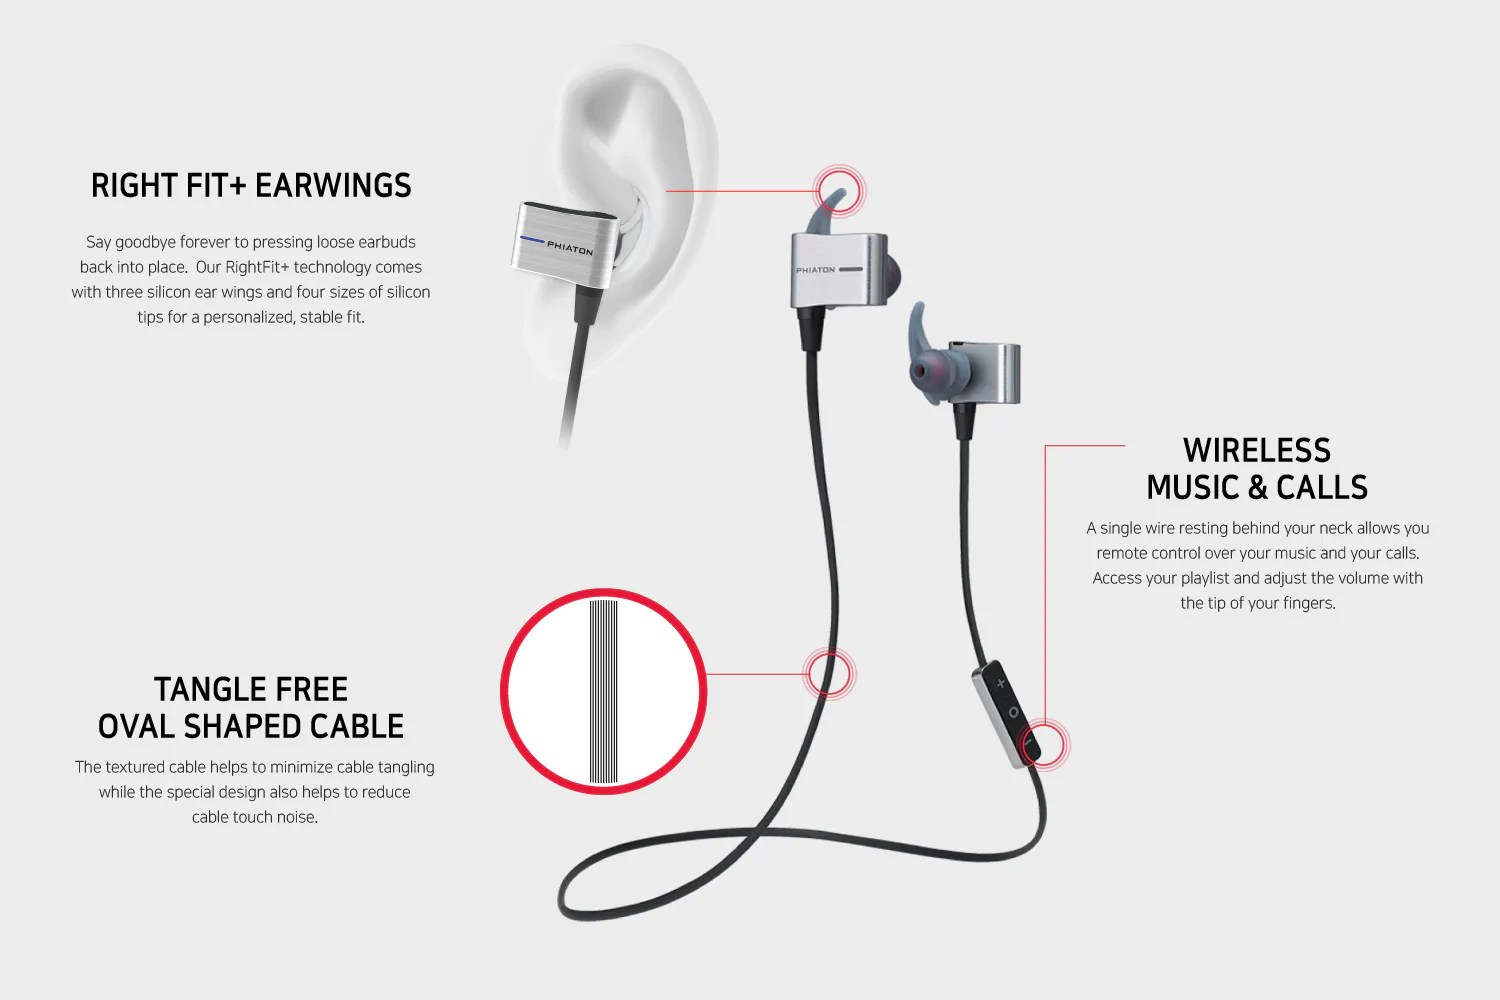 water resistant bluetooth earbuds bt 110 earphones phiaton on jabra bluetooth wiring diagram  [ 1500 x 1000 Pixel ]